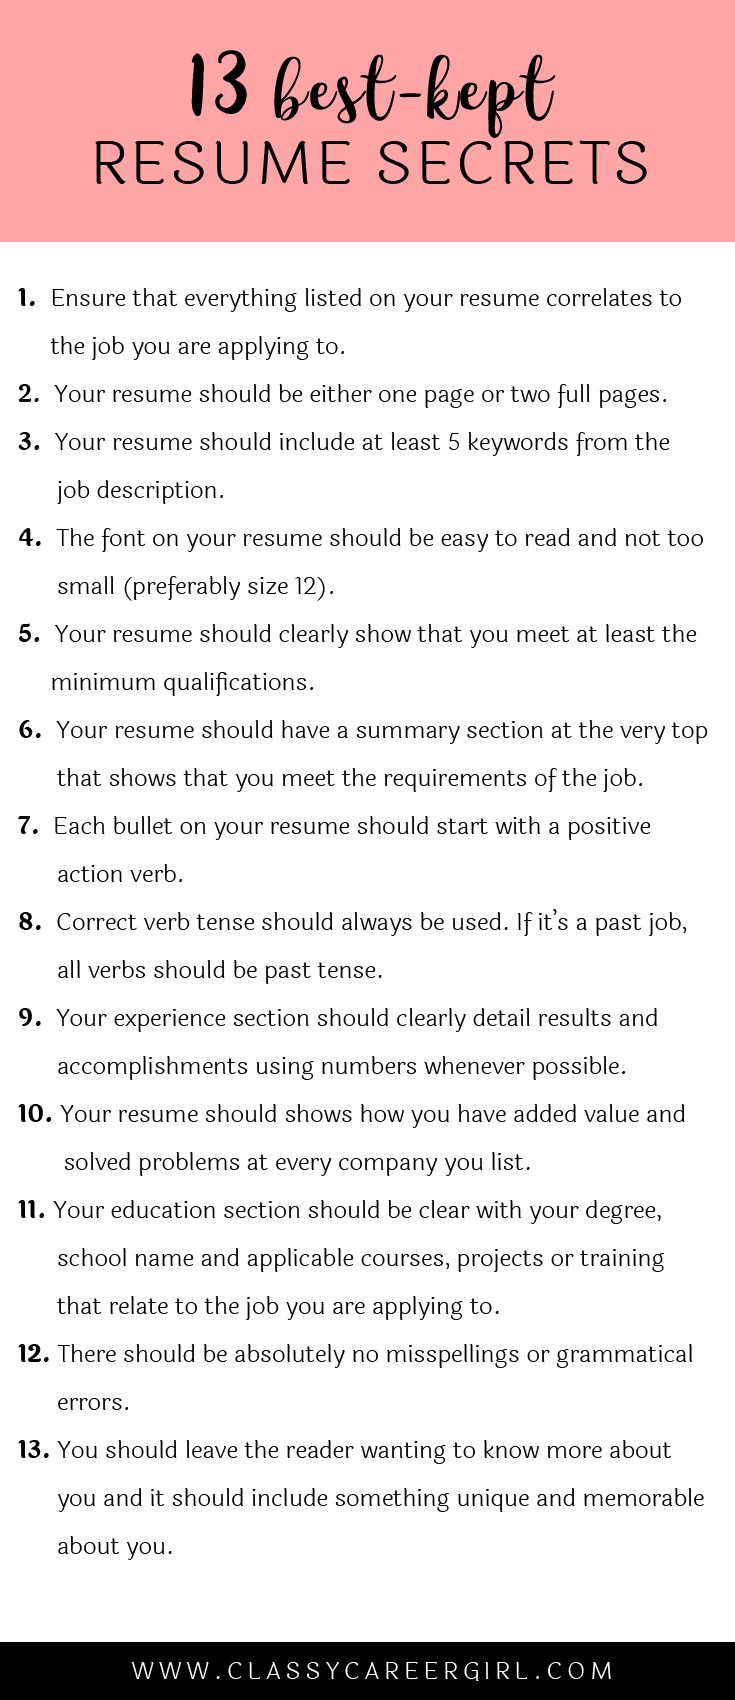 Opposenewapstandardsus  Ravishing  Ideas About Resume On Pinterest  Cv Format Resume Cv And  With Exciting Some Hiring Managers Will Toss Your Resume Out If You Dont Know These  With Attractive Cheap Resumes Also Summary Of Qualifications On Resume In Addition Objective Example For Resume And Professional Acting Resume As Well As Resuming Windows Additionally Compliance Resume From Pinterestcom With Opposenewapstandardsus  Exciting  Ideas About Resume On Pinterest  Cv Format Resume Cv And  With Attractive Some Hiring Managers Will Toss Your Resume Out If You Dont Know These  And Ravishing Cheap Resumes Also Summary Of Qualifications On Resume In Addition Objective Example For Resume From Pinterestcom